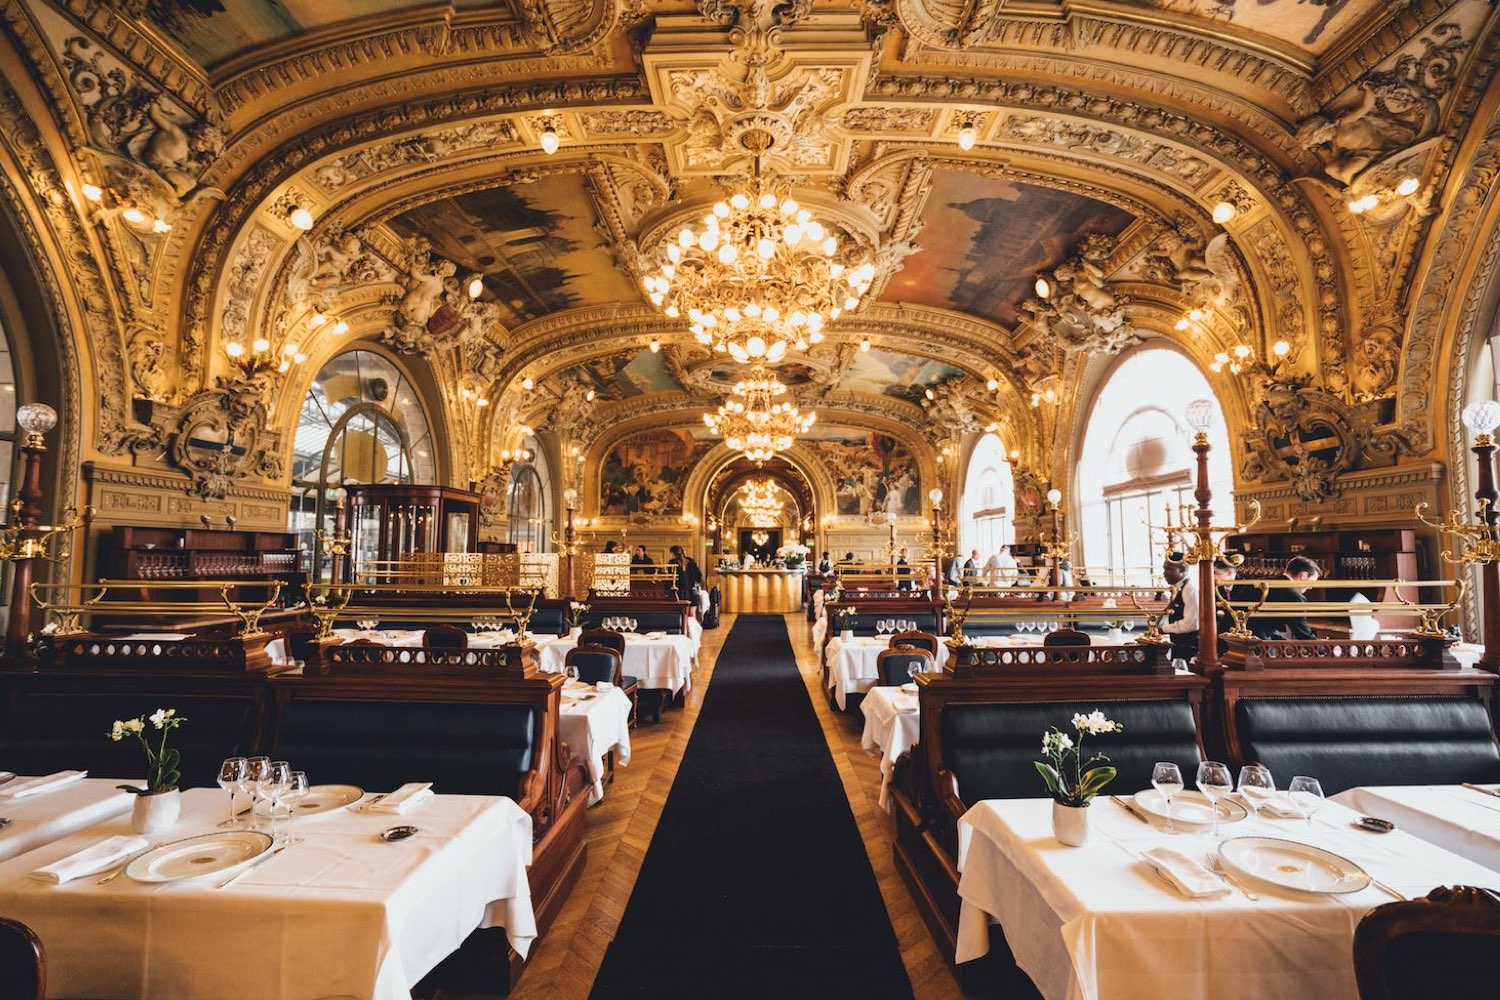 Le train bleu best restaurant gare de lyon bastille for Paris restaurant